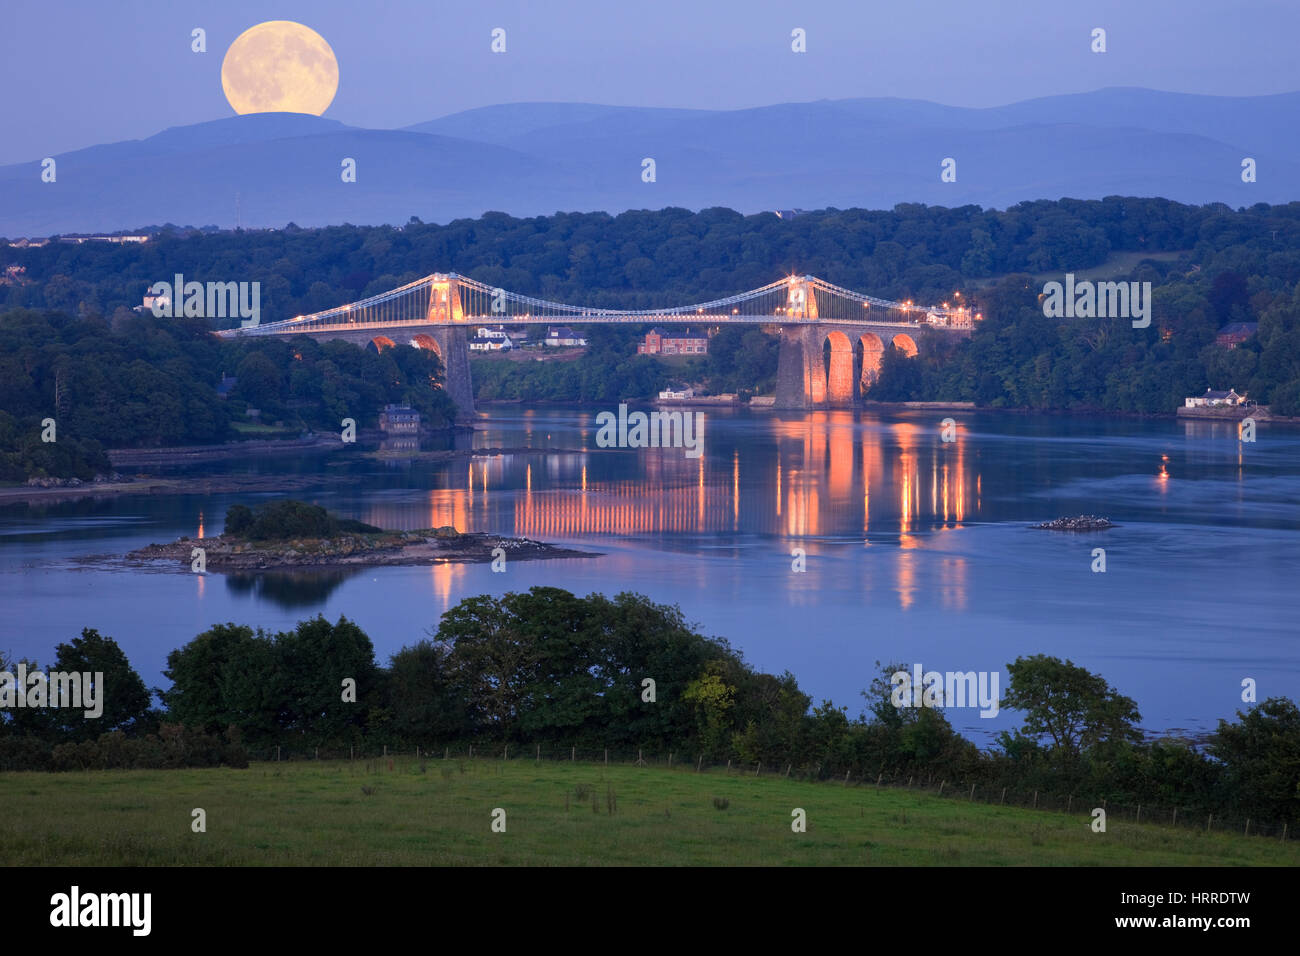 moonrise-full-moon-rising-over-menai-str